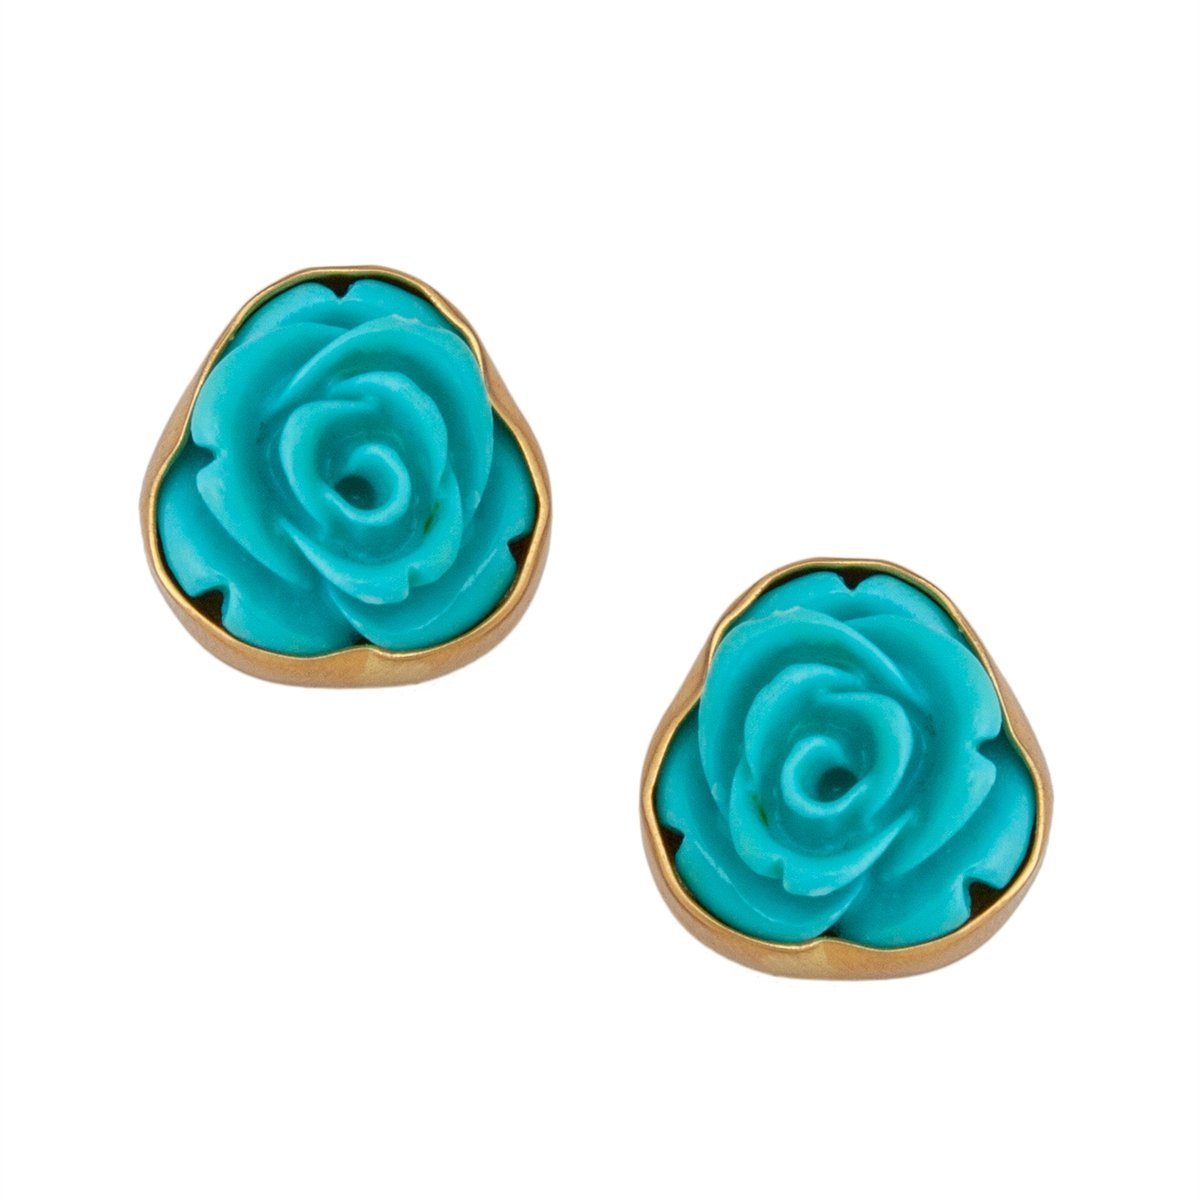 Resin Flower Post Earrings - Teal | Charles Albert Jewelry